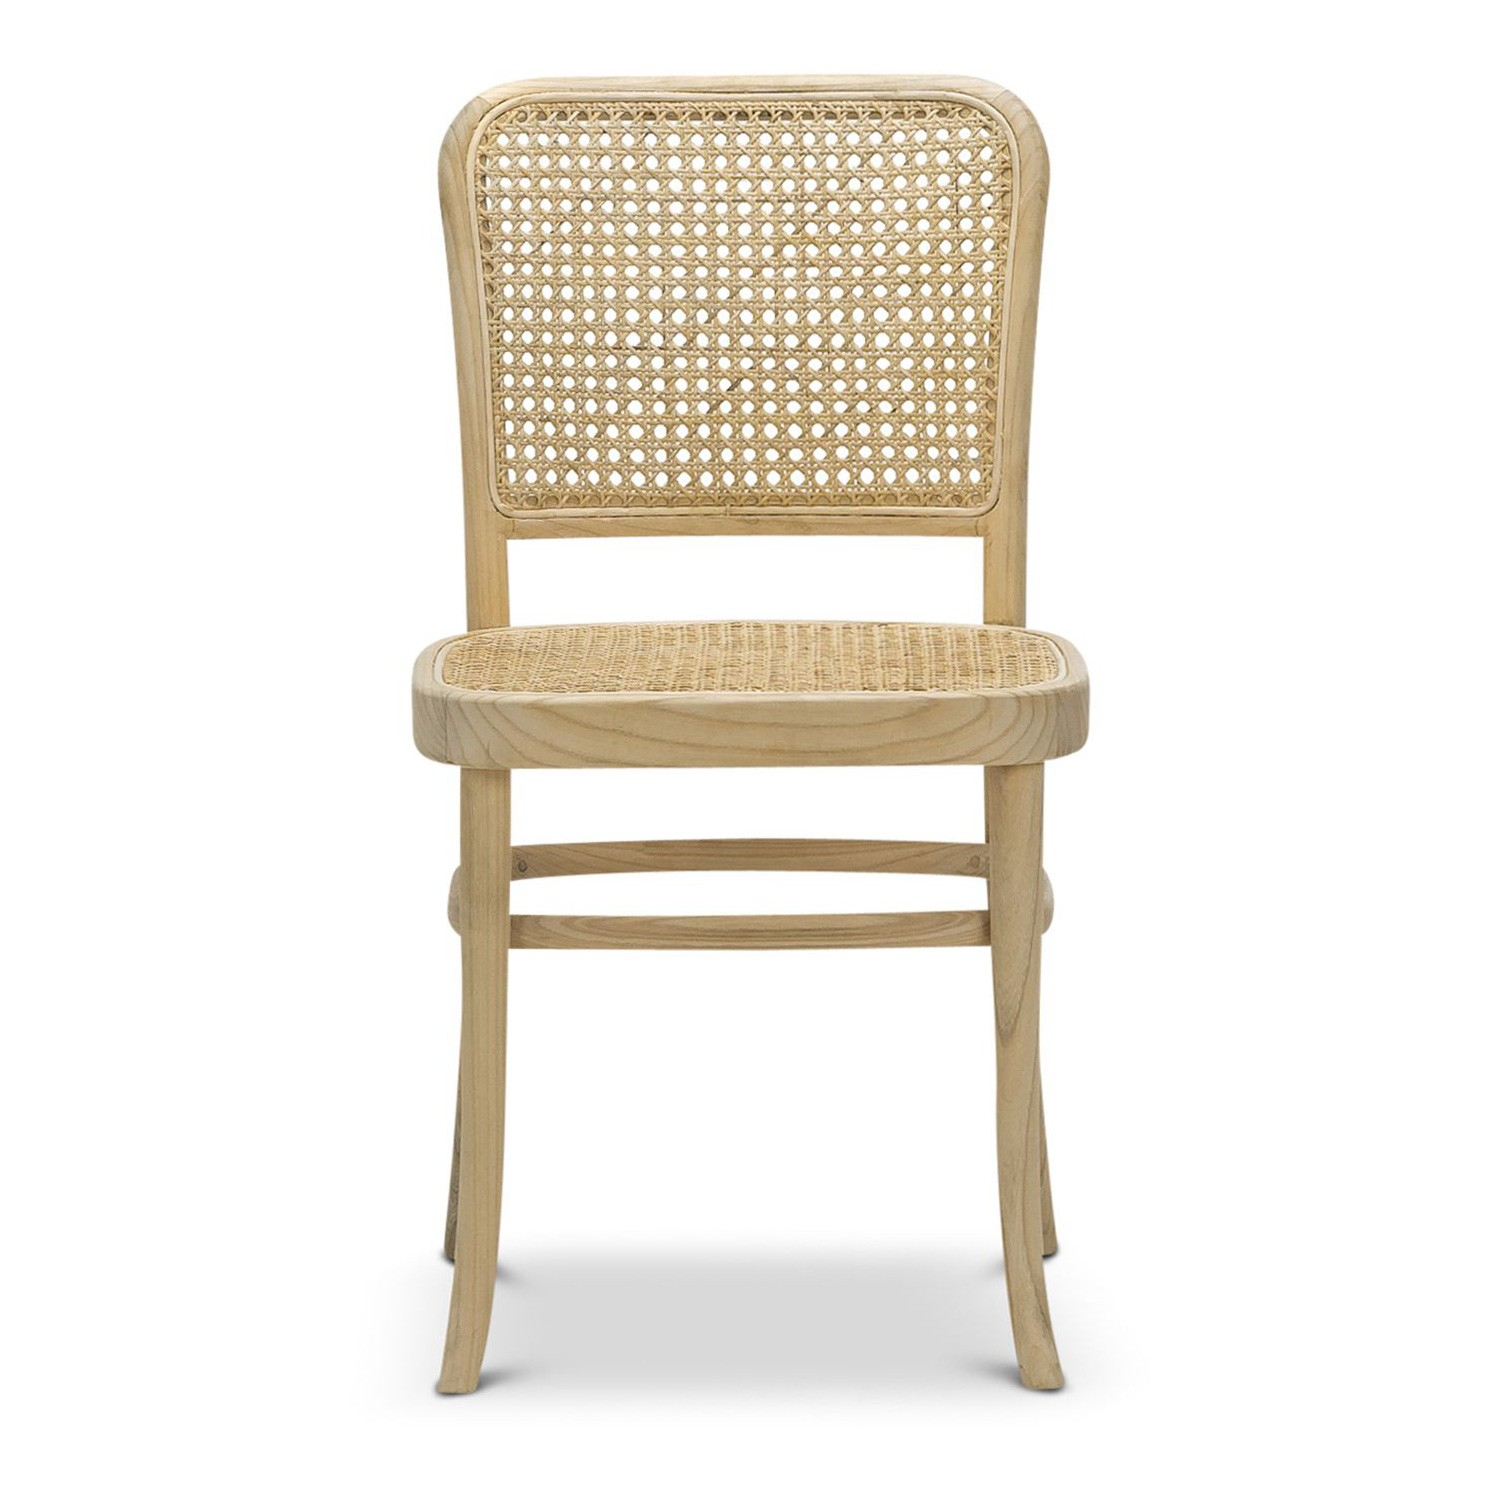 Prague Rattan & Teak Timber Dining Chair, Set of 2, Natural